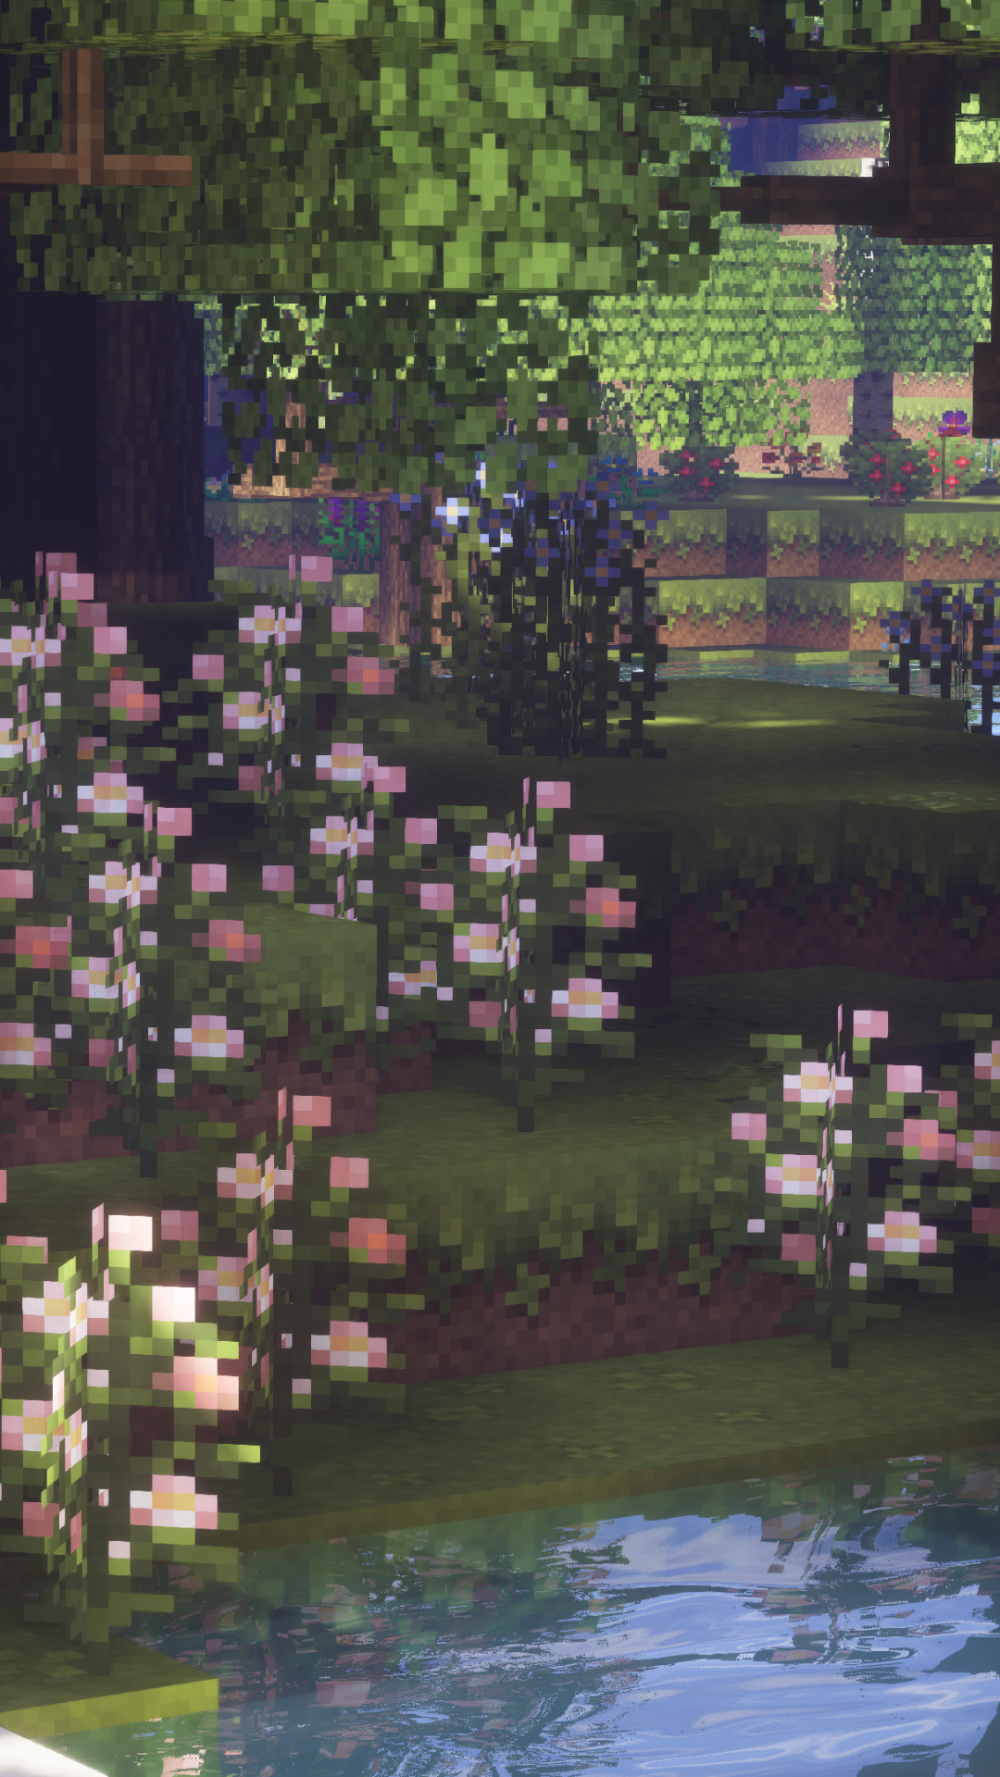 More Wallpapers With Peonies Minecraft Aesthetic Minecraft Wallpaper Minecraft Pictures Mc Wallpaper